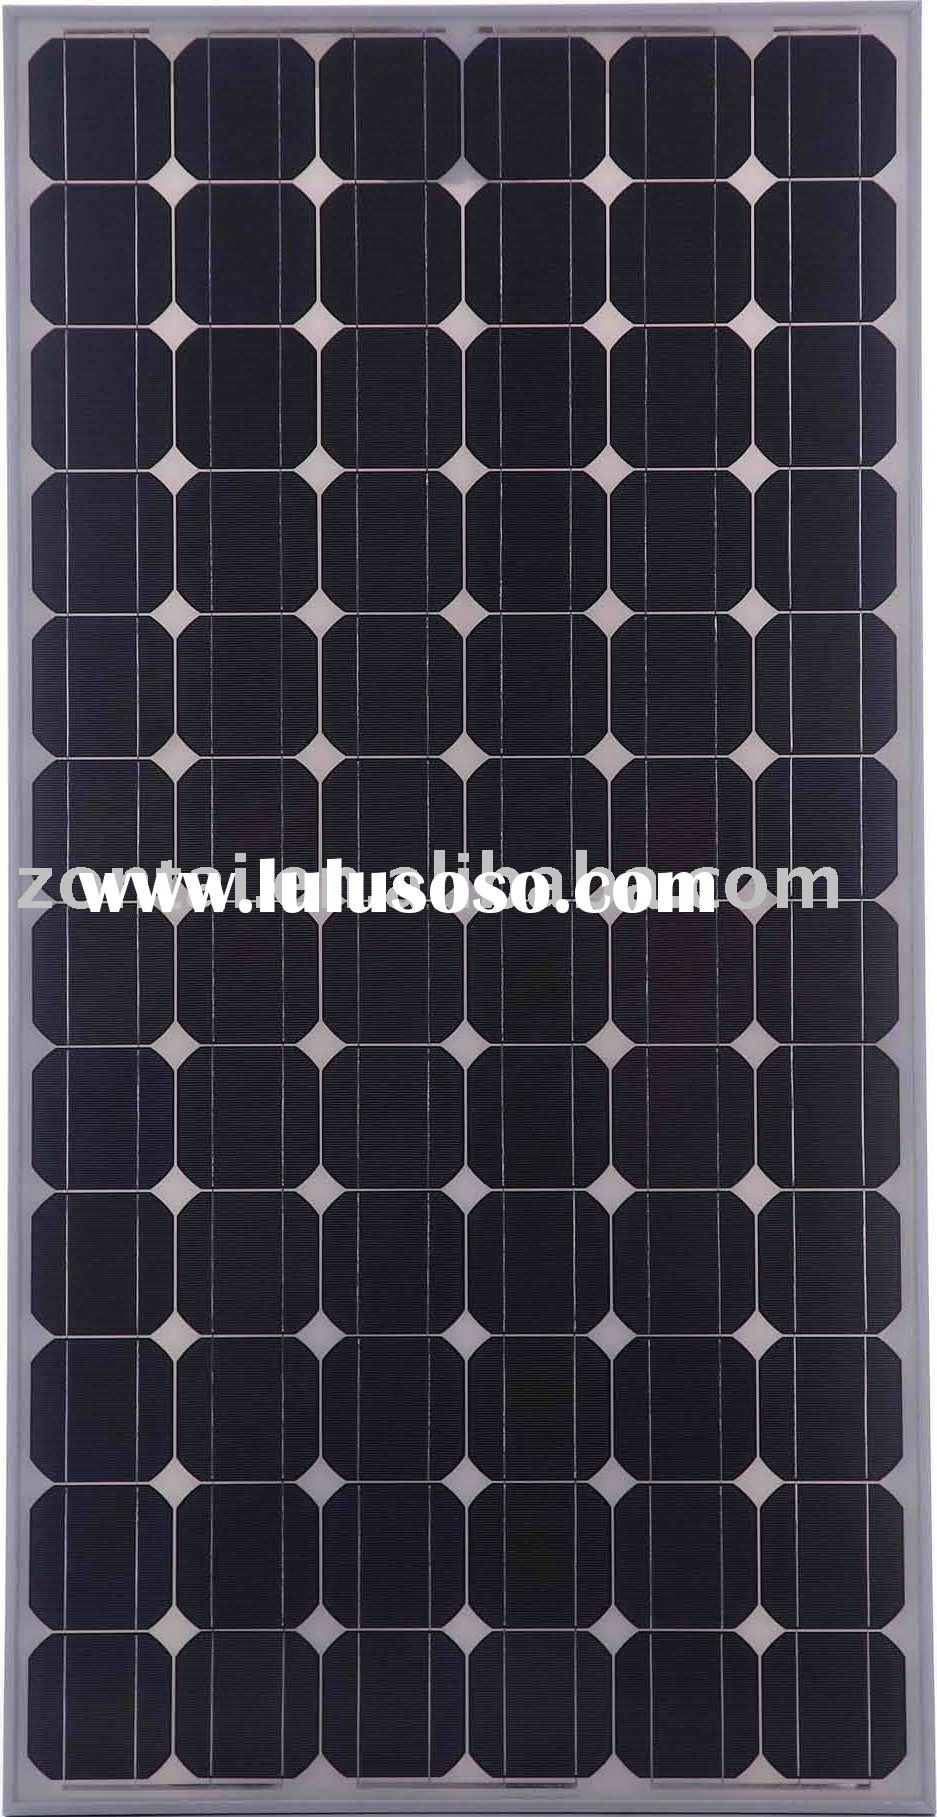 ZT-160M Price per watt solar panels PV modules